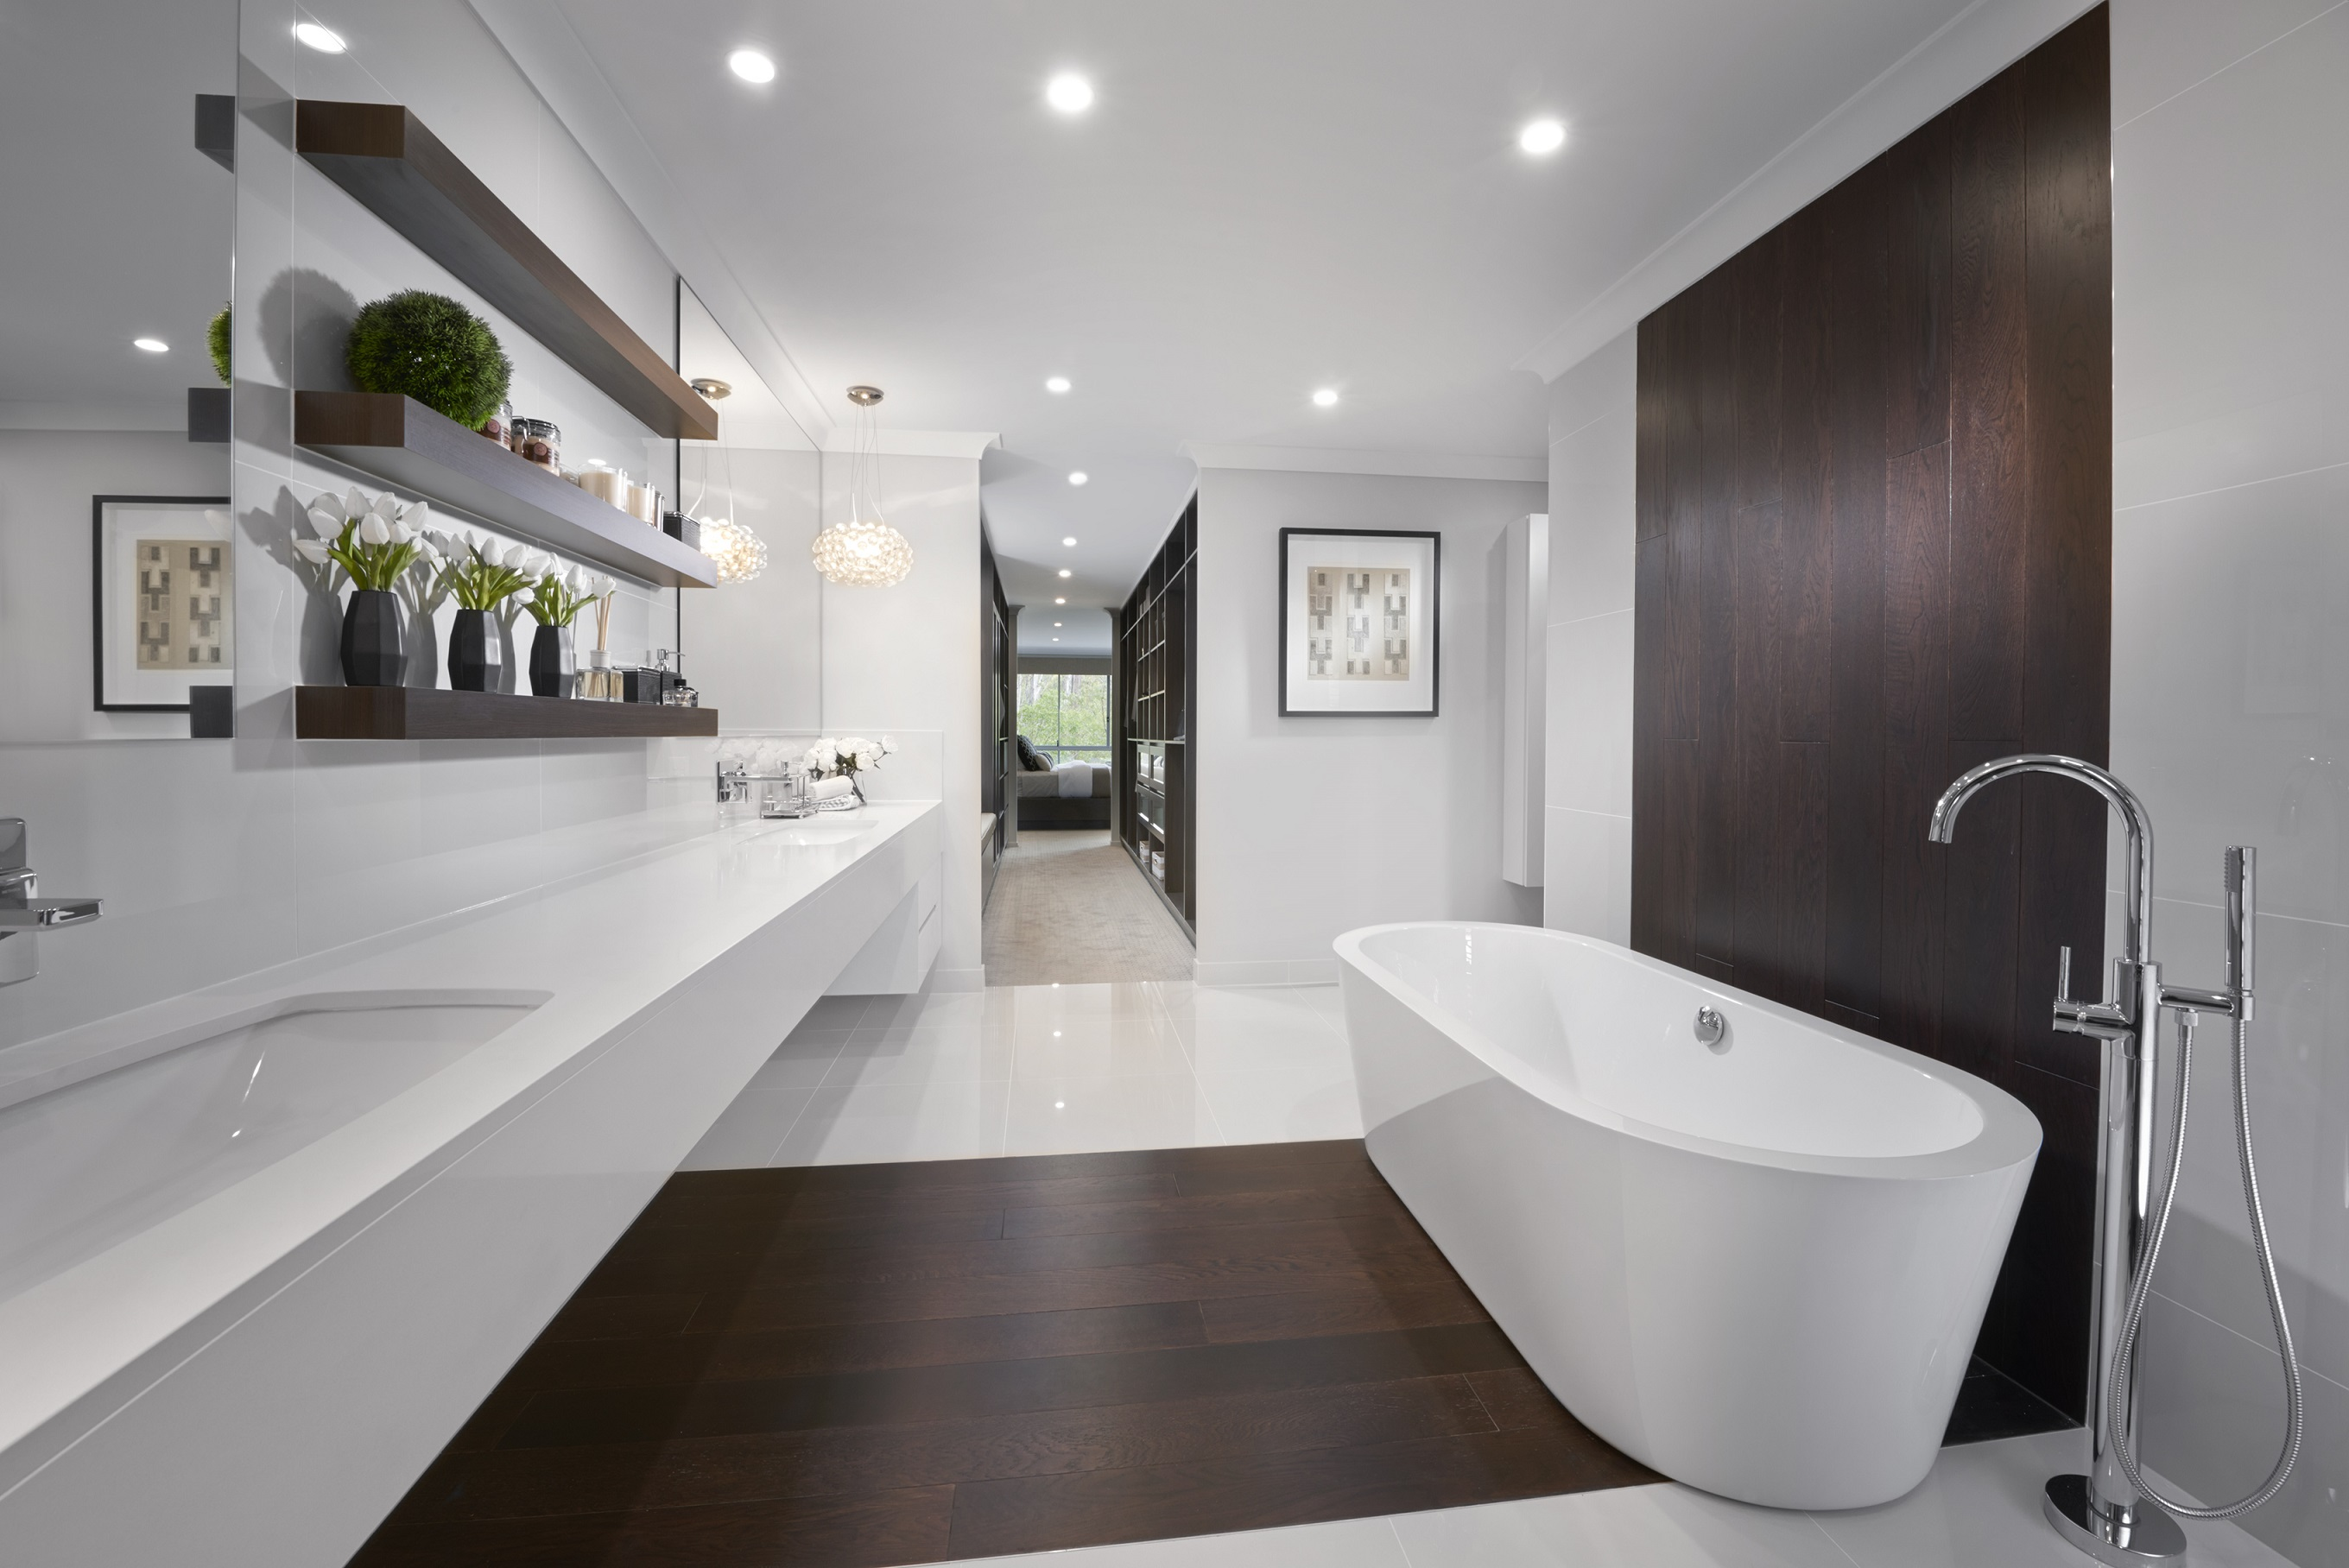 Home Design Ideas Bathroom: Queensland's Best Bathroom Design